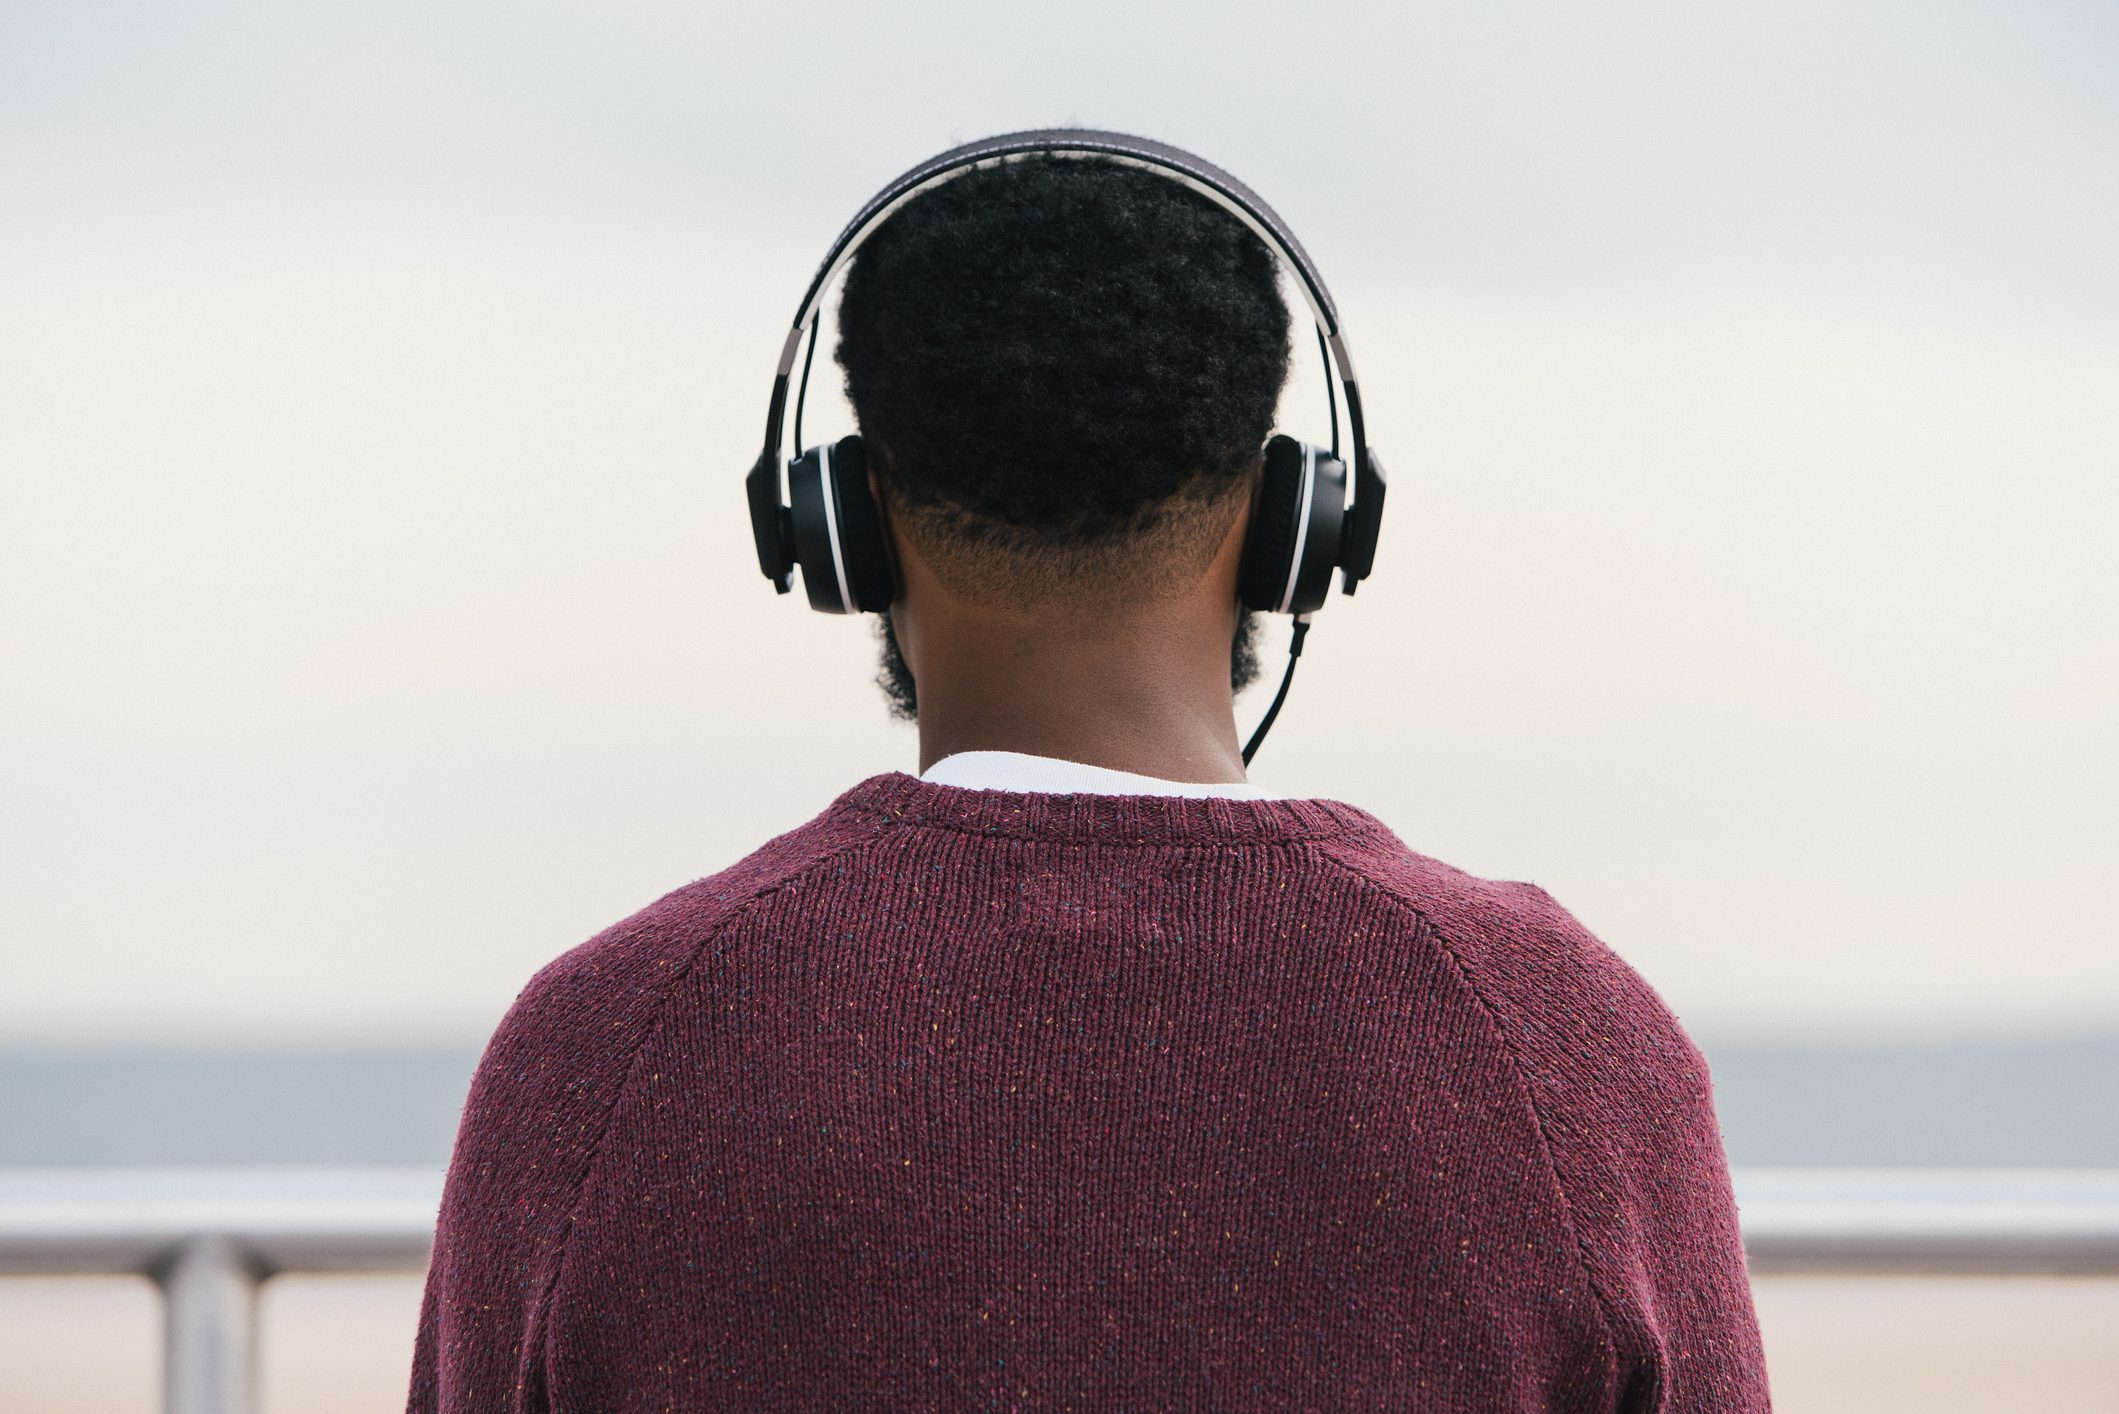 Rear view of man listening to headphones at beach, Coney Island, New York, USA